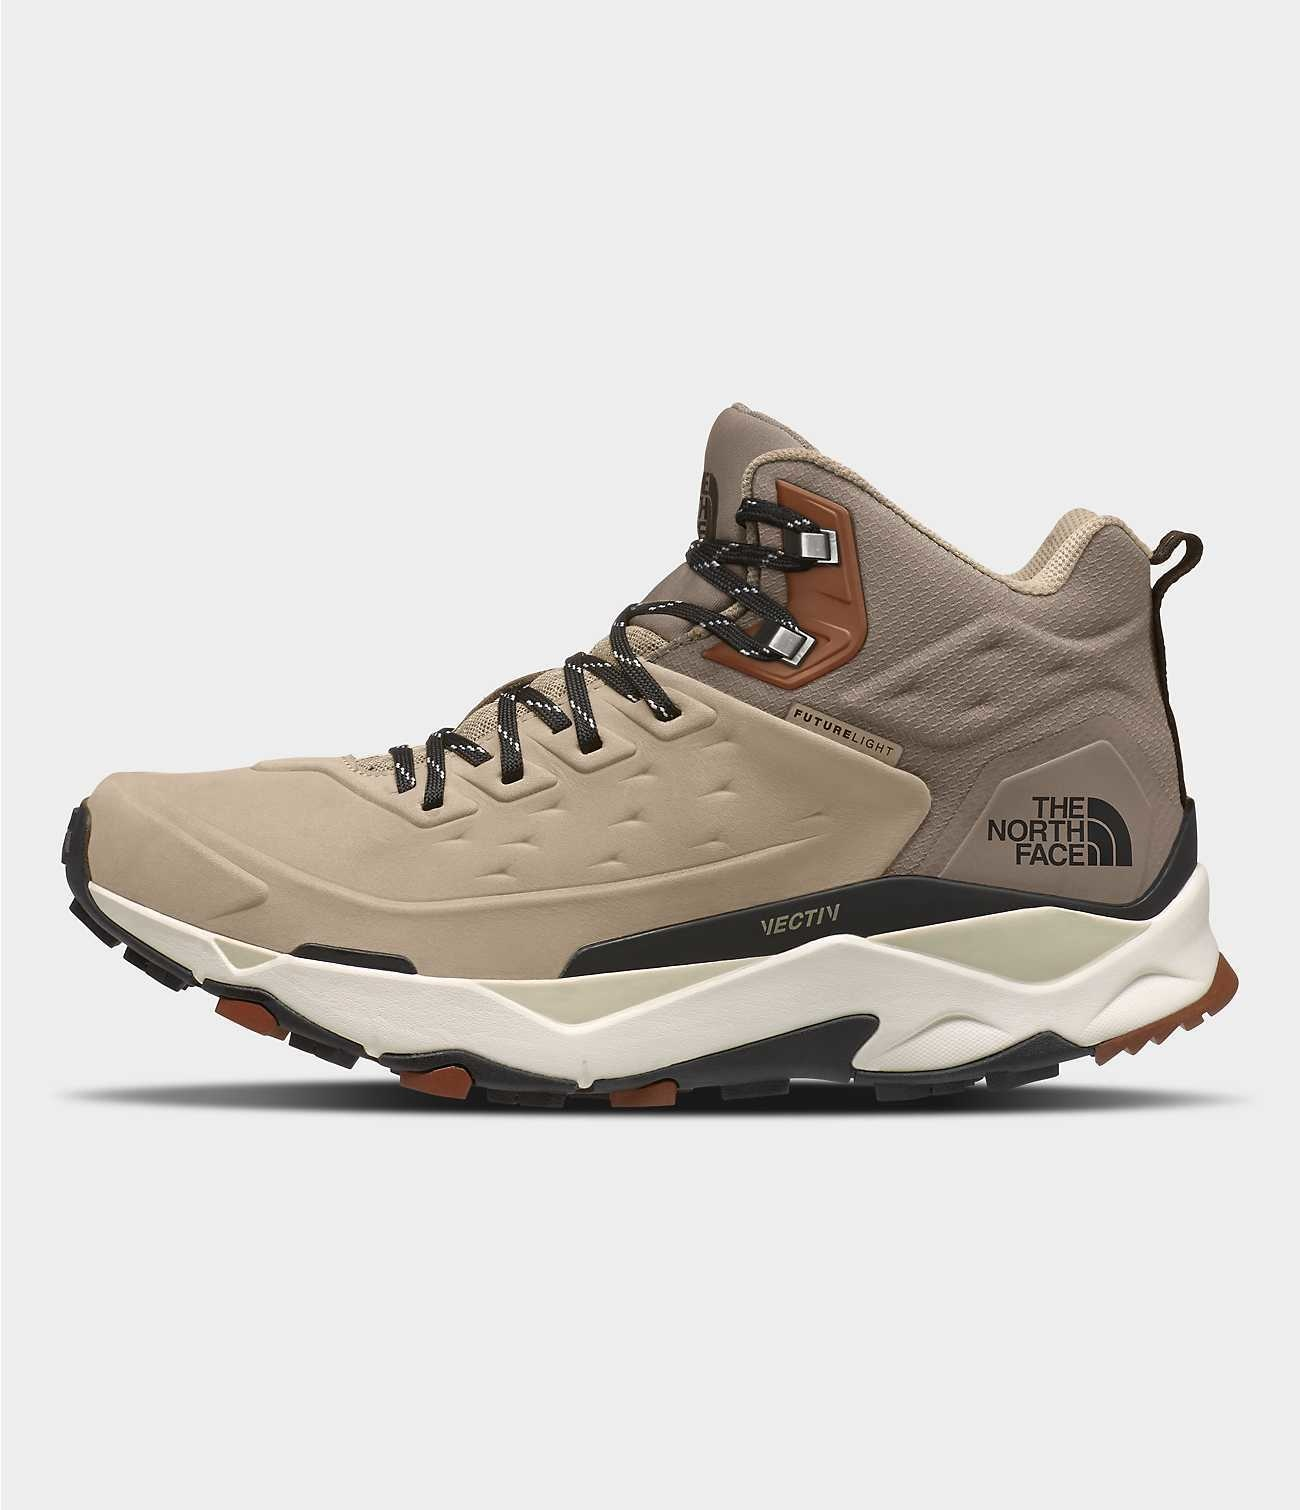 The North Face The North Face M's VECTIV Exploris Mid FL Leather Boot